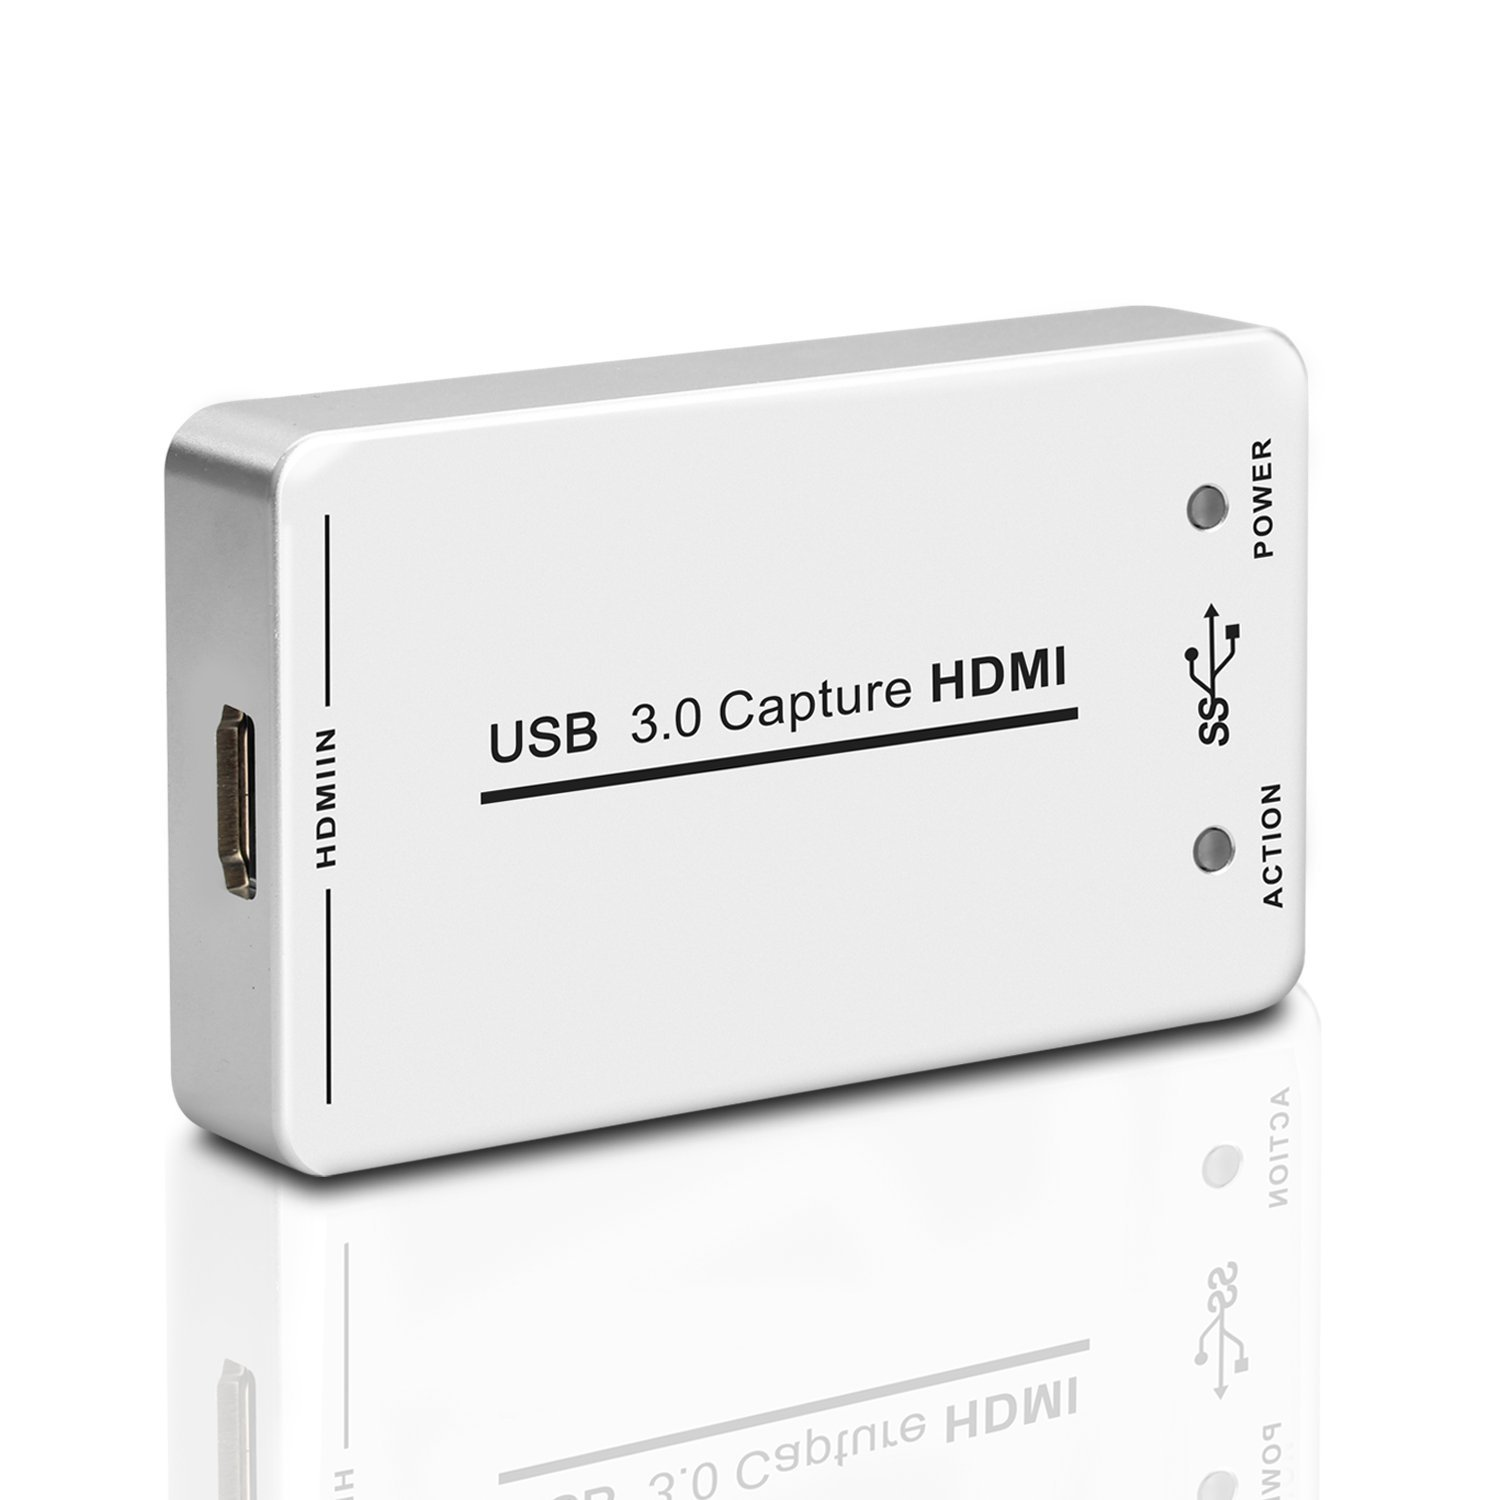 Cheap Hdmi Capture Linux, find Hdmi Capture Linux deals on